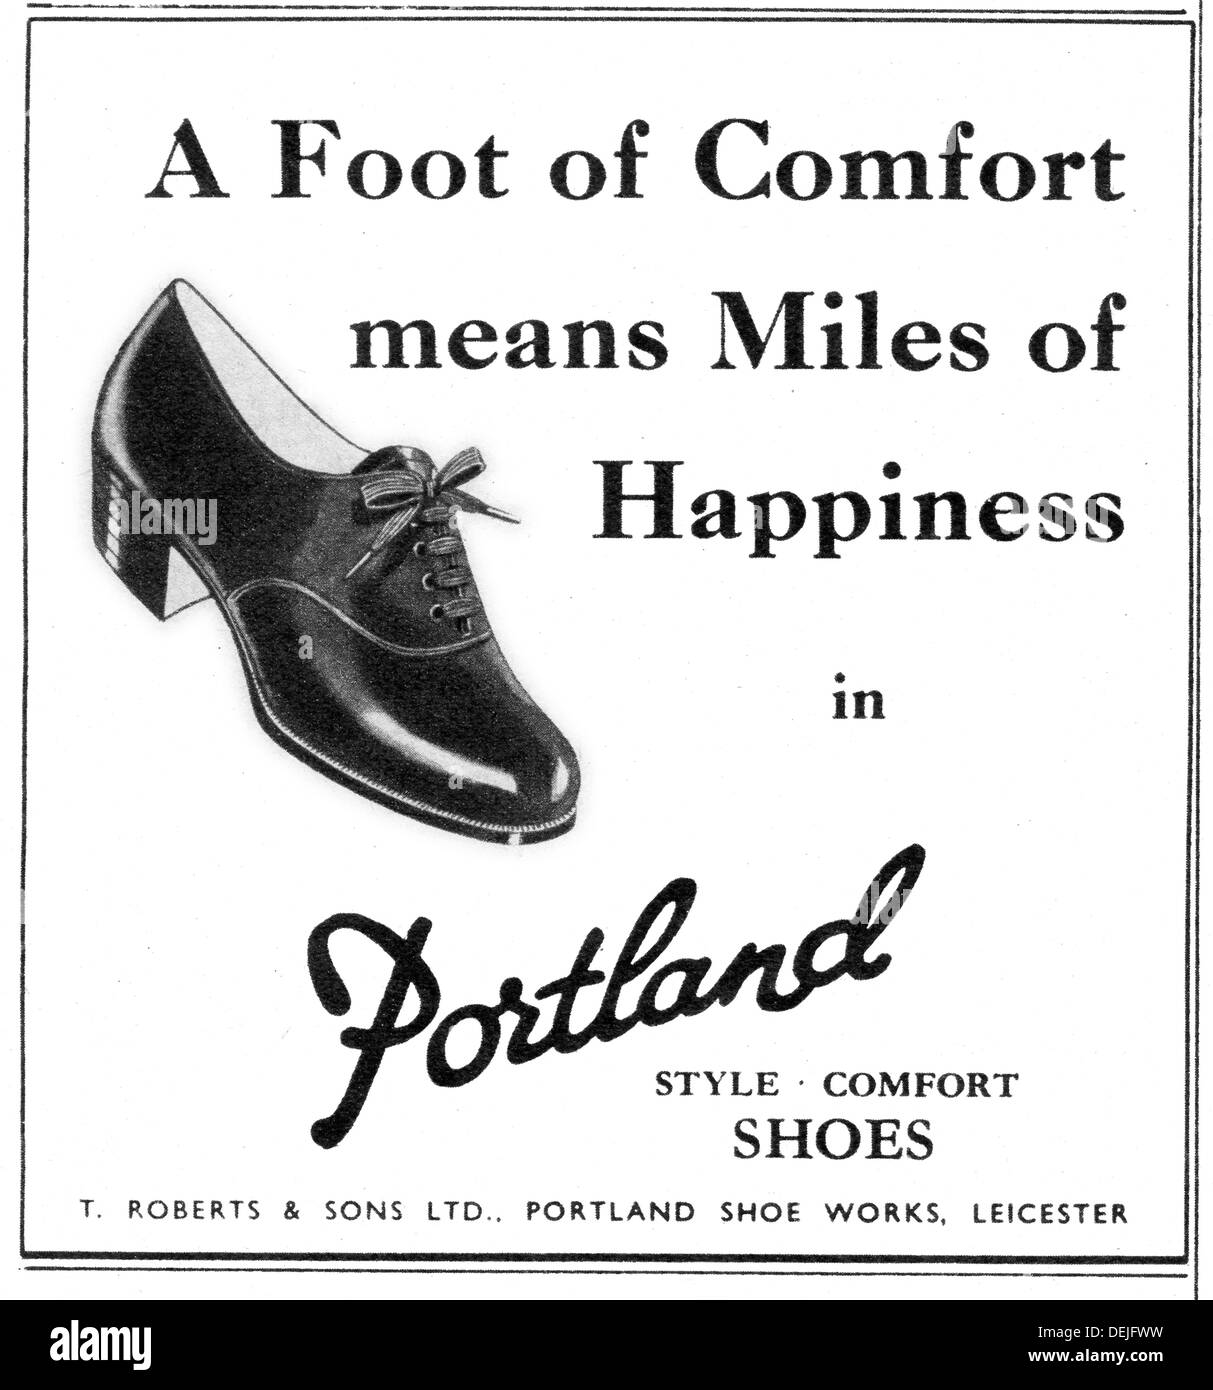 advert for Portland women's shoes in 1947 - Stock Image